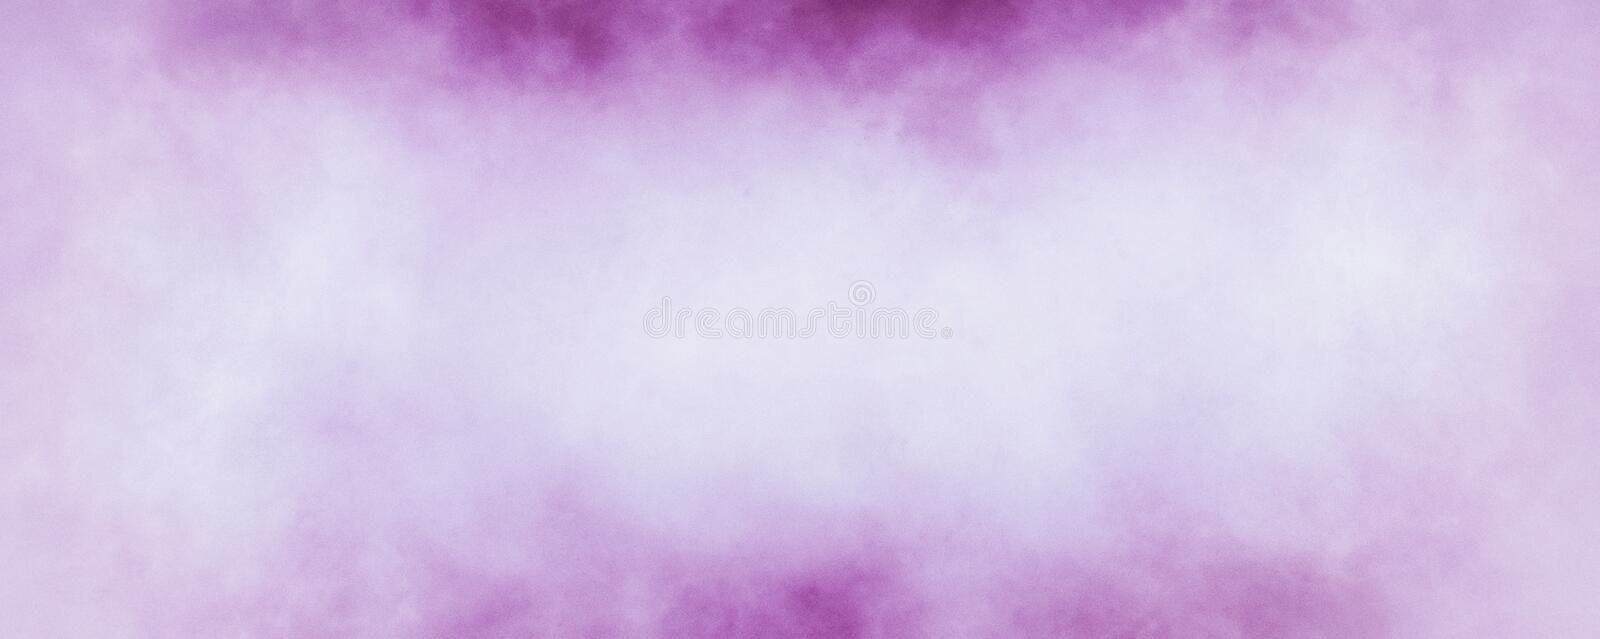 White background with purple and pink old grunge textured borders that are slightly blurred with a soft faint vintage marbled text royalty free illustration